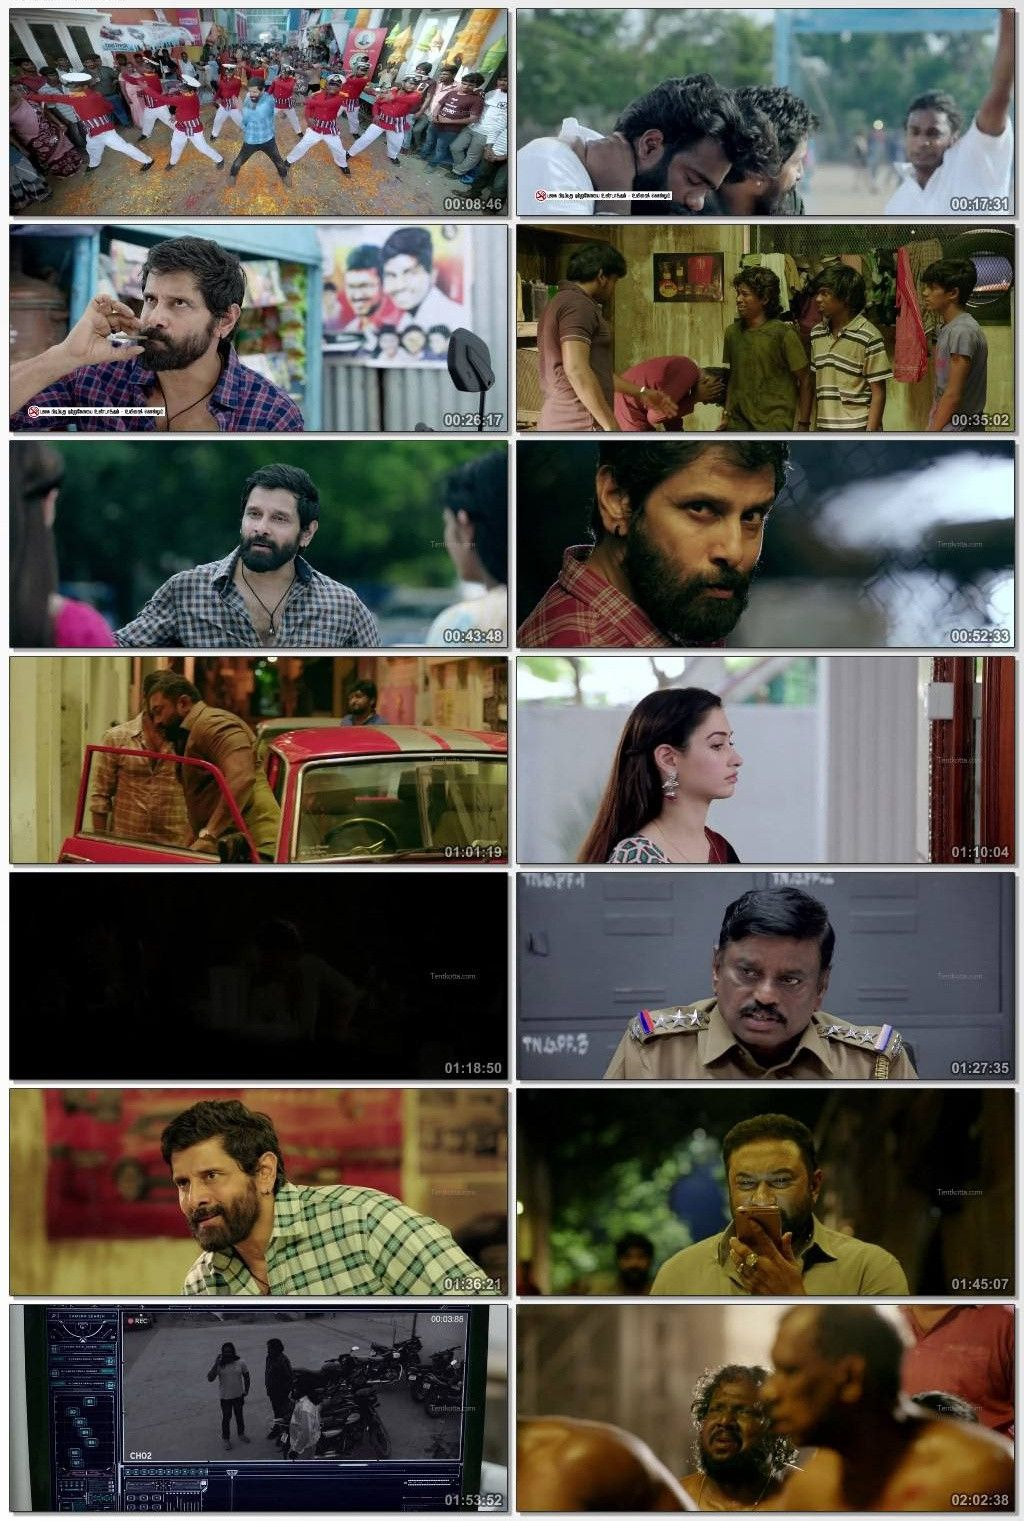 Sketch (2018) full movie download in hindi hd